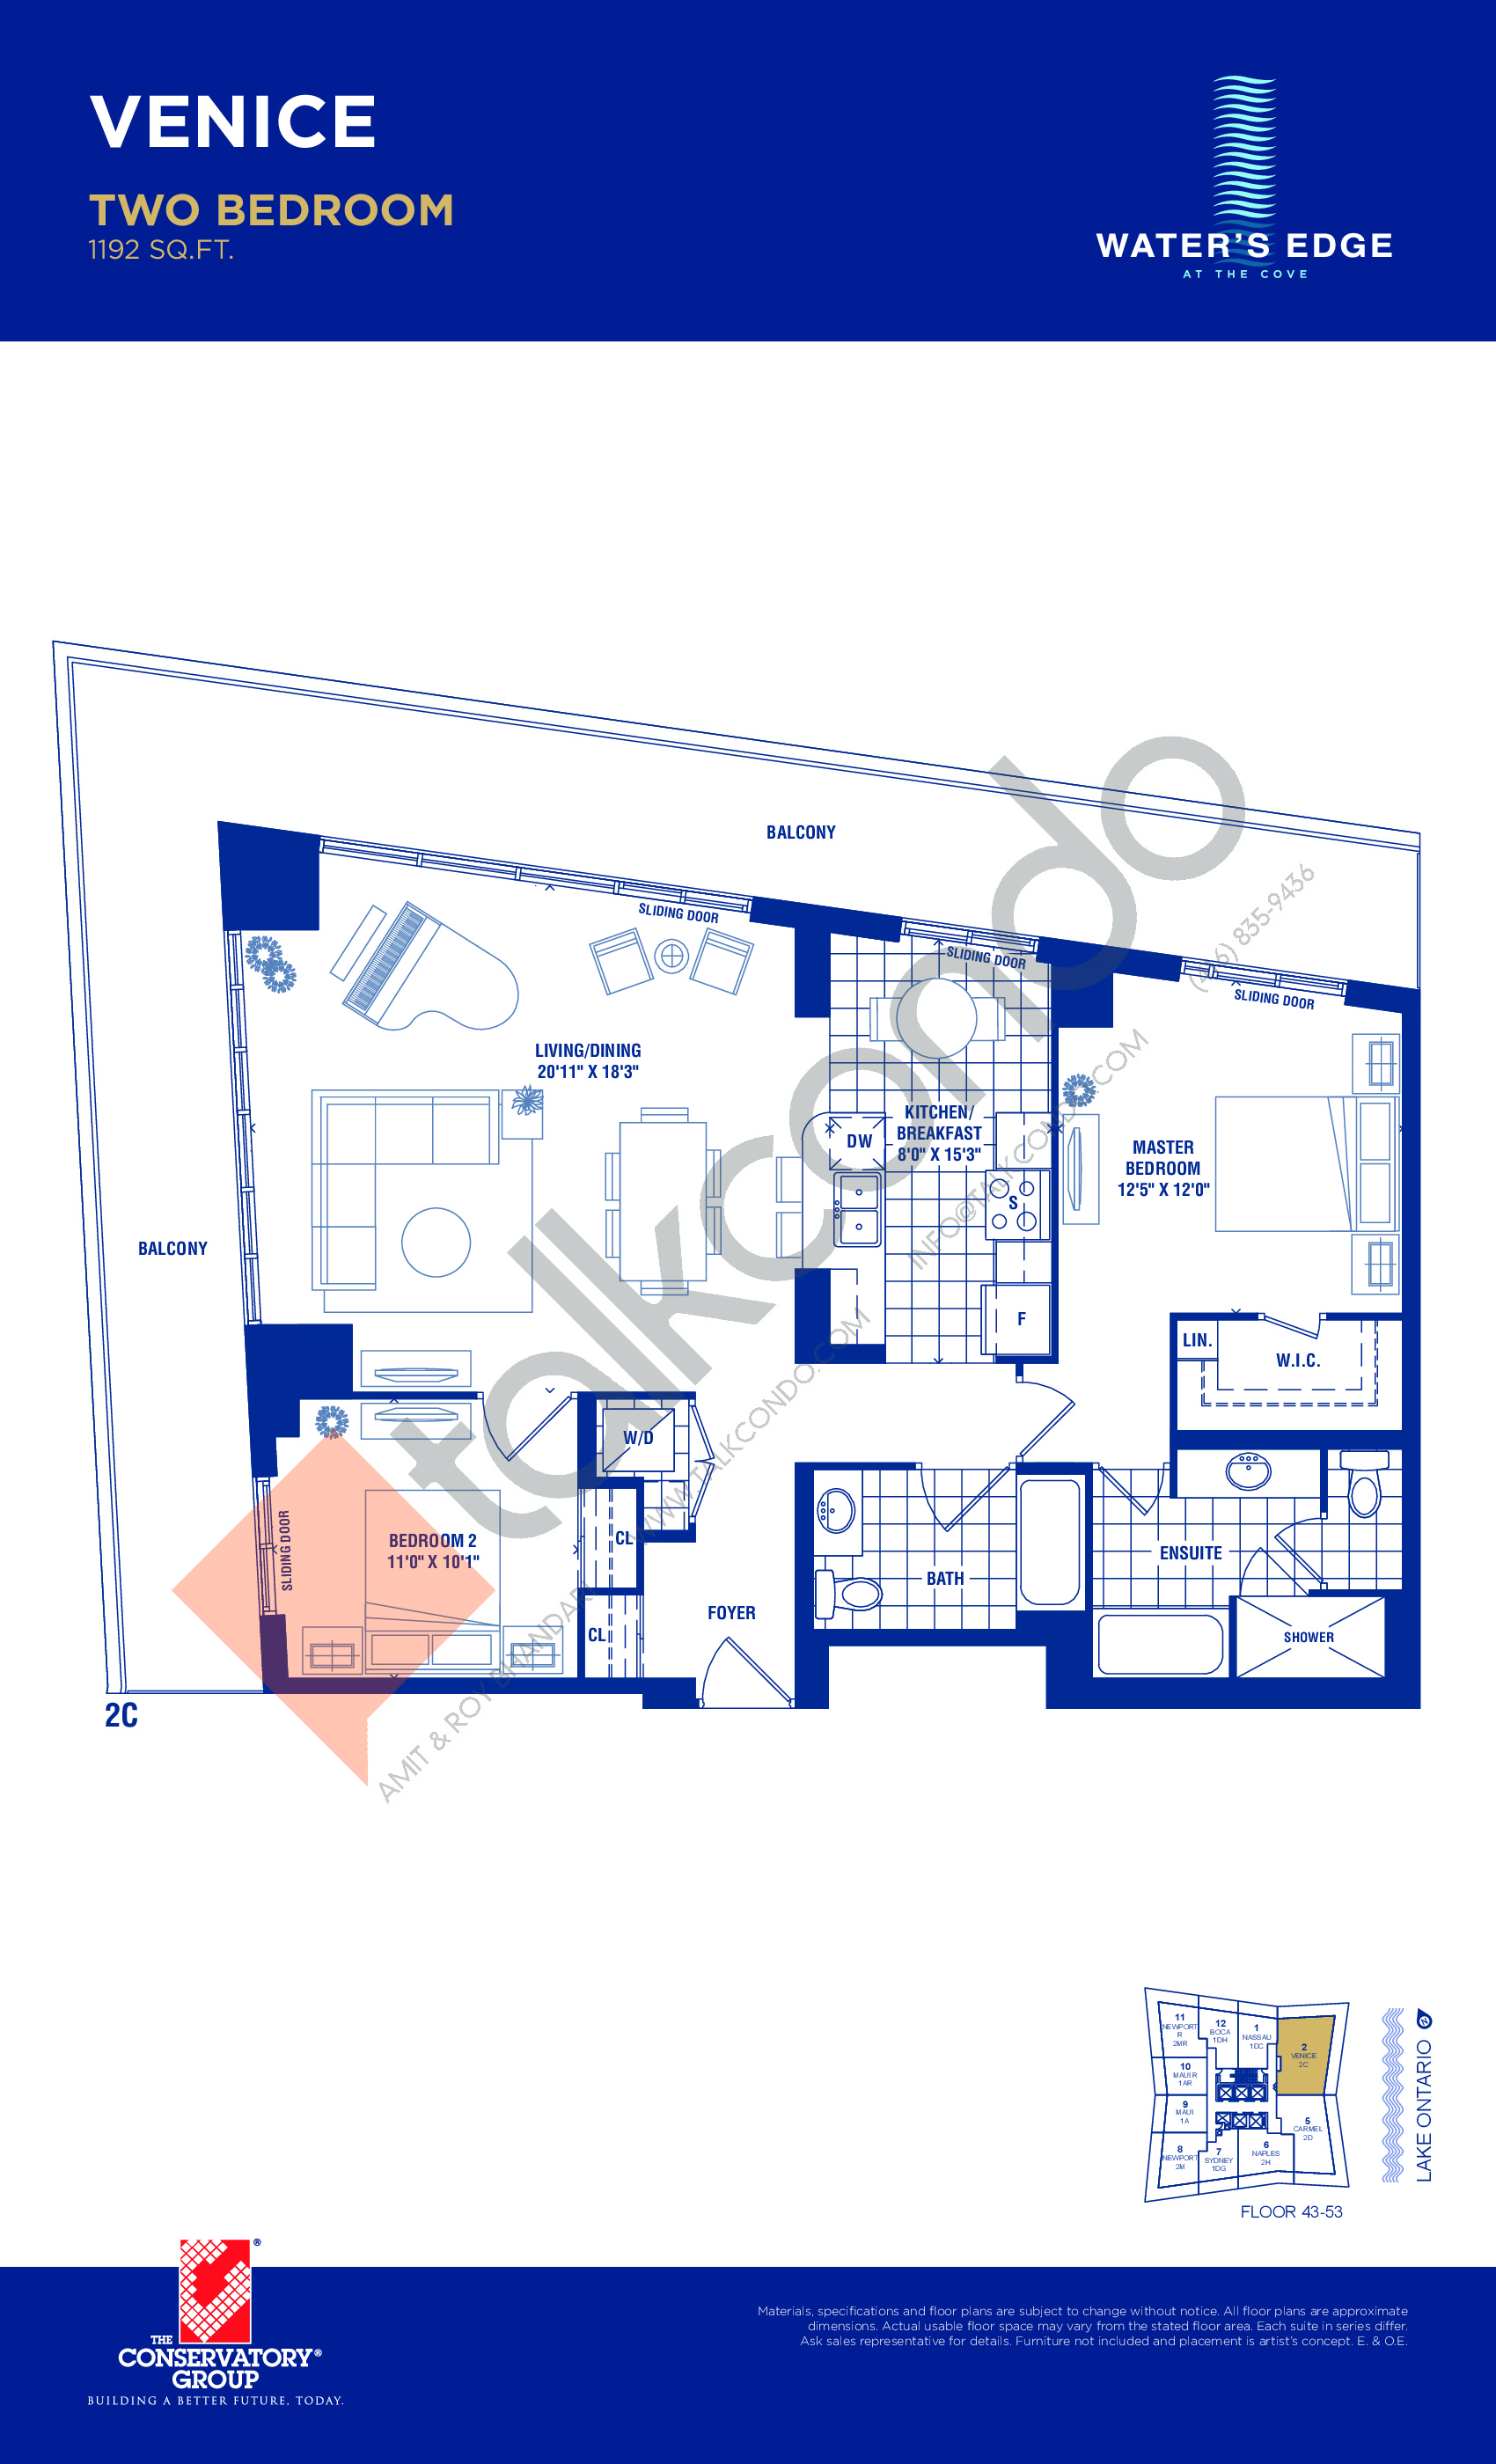 Venice Floor Plan at Water's Edge at the Cove Condos - 1192 sq.ft